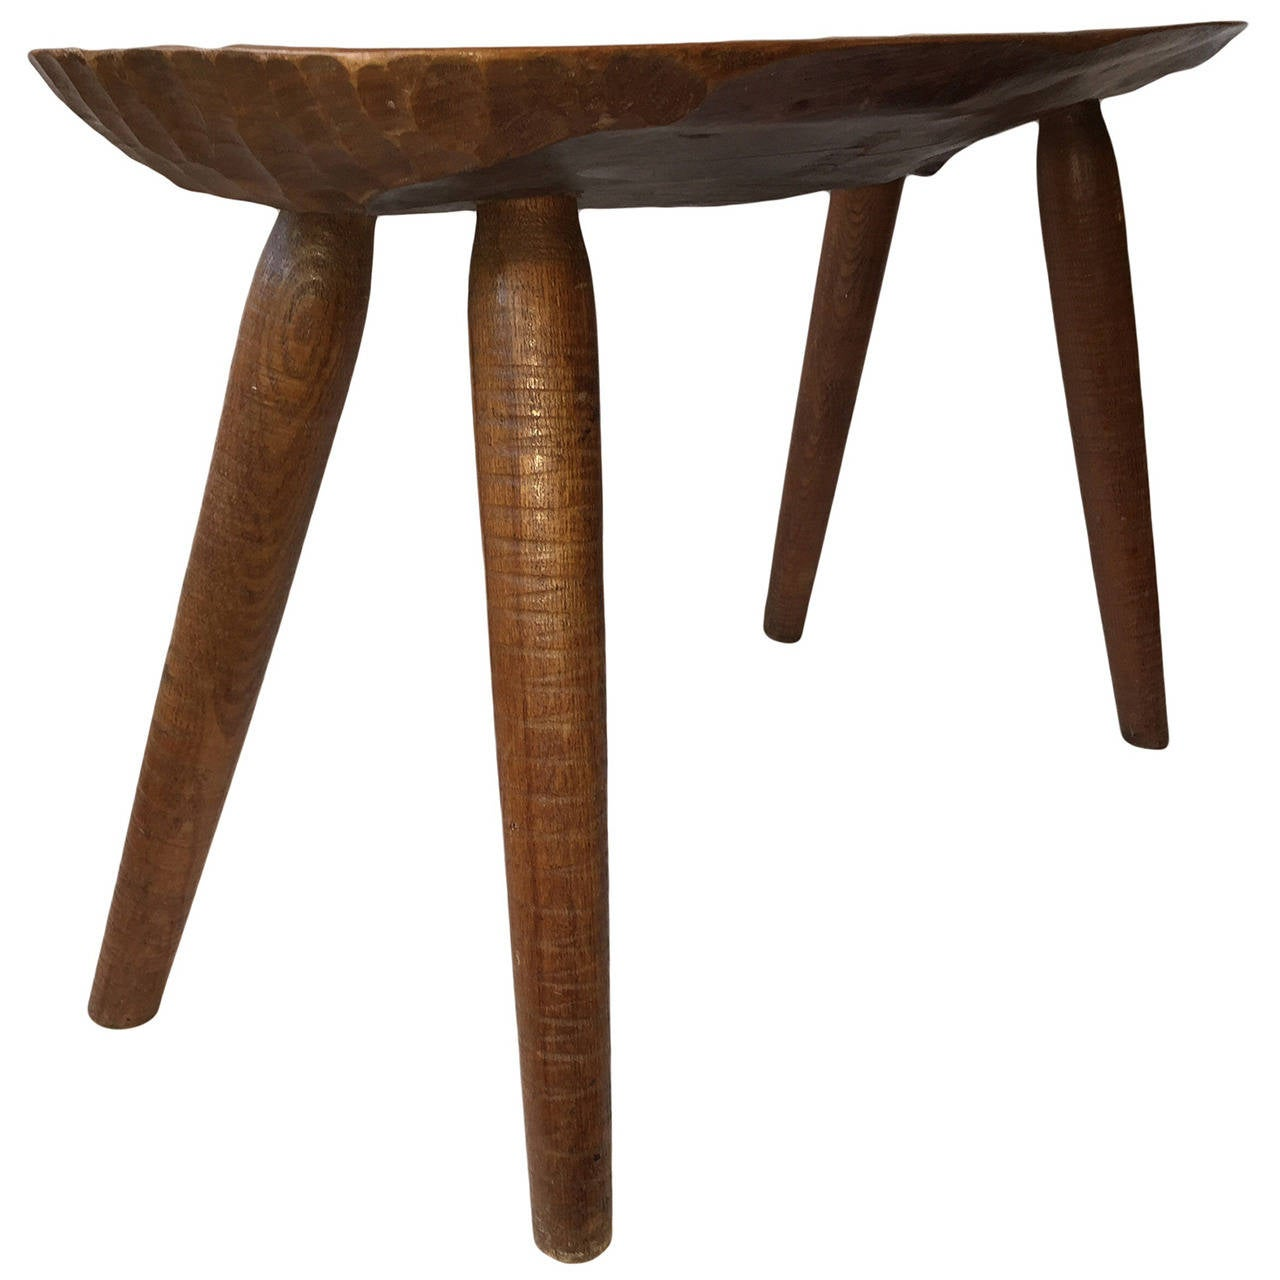 A franze walnut side table or bench at 1stdibs for Walnut side table